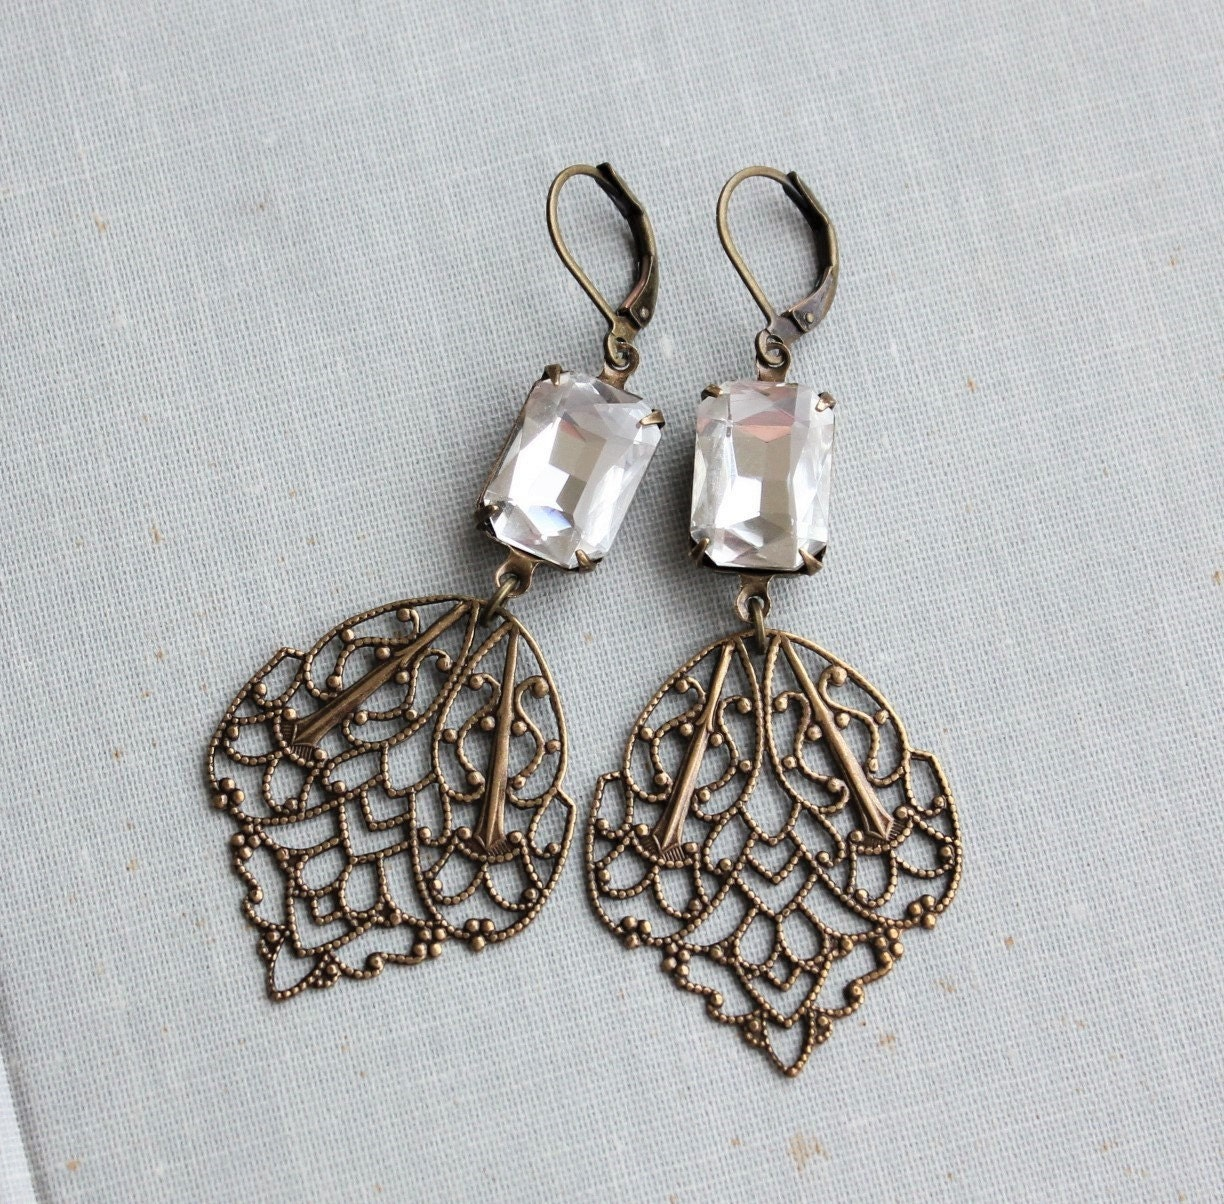 octagon filigree leaf earrings in antique brass